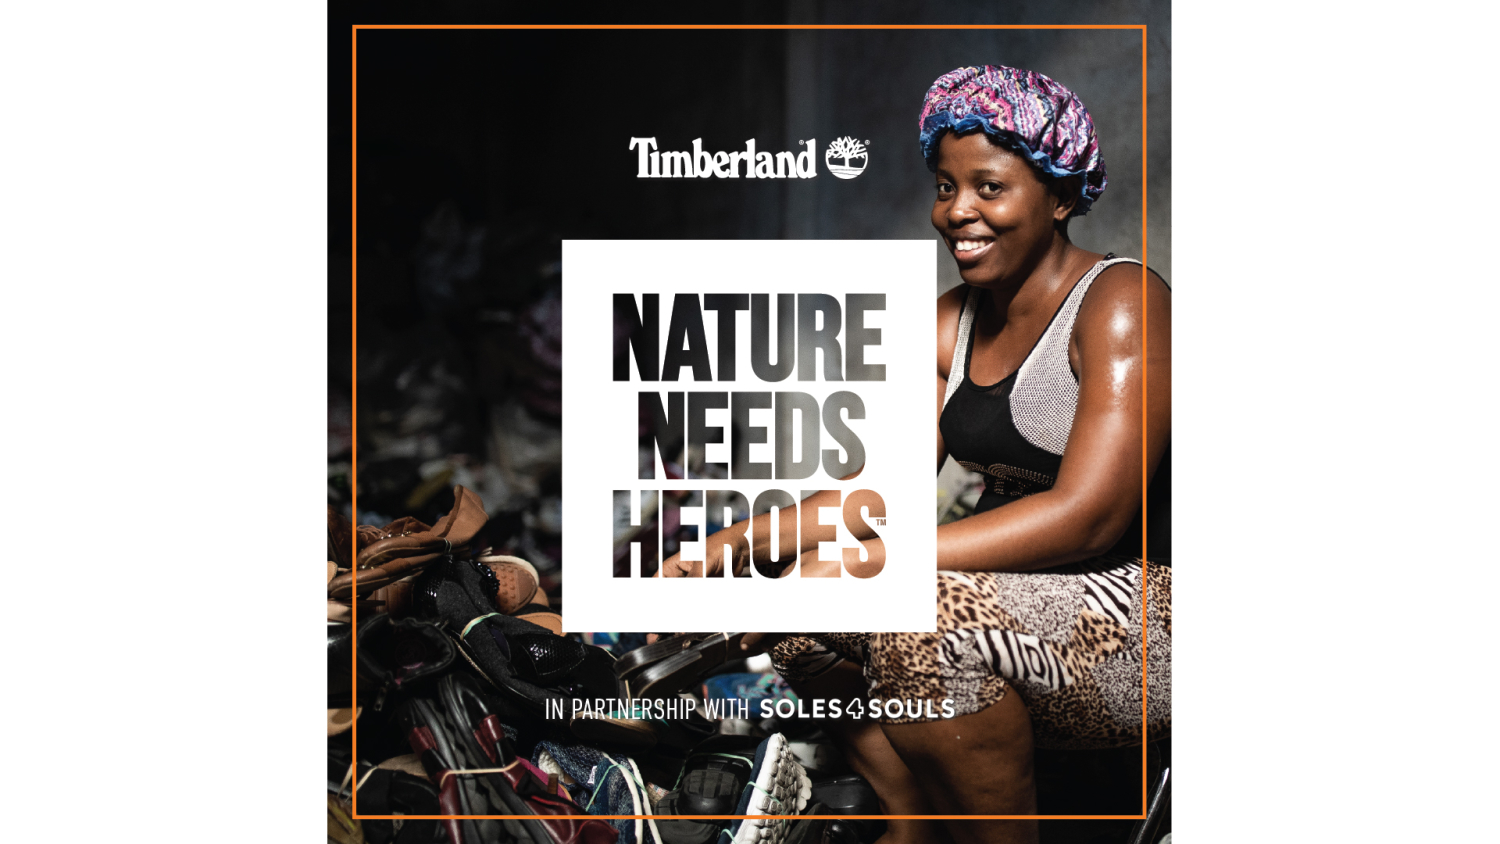 Timberland 'Nature need heroes'